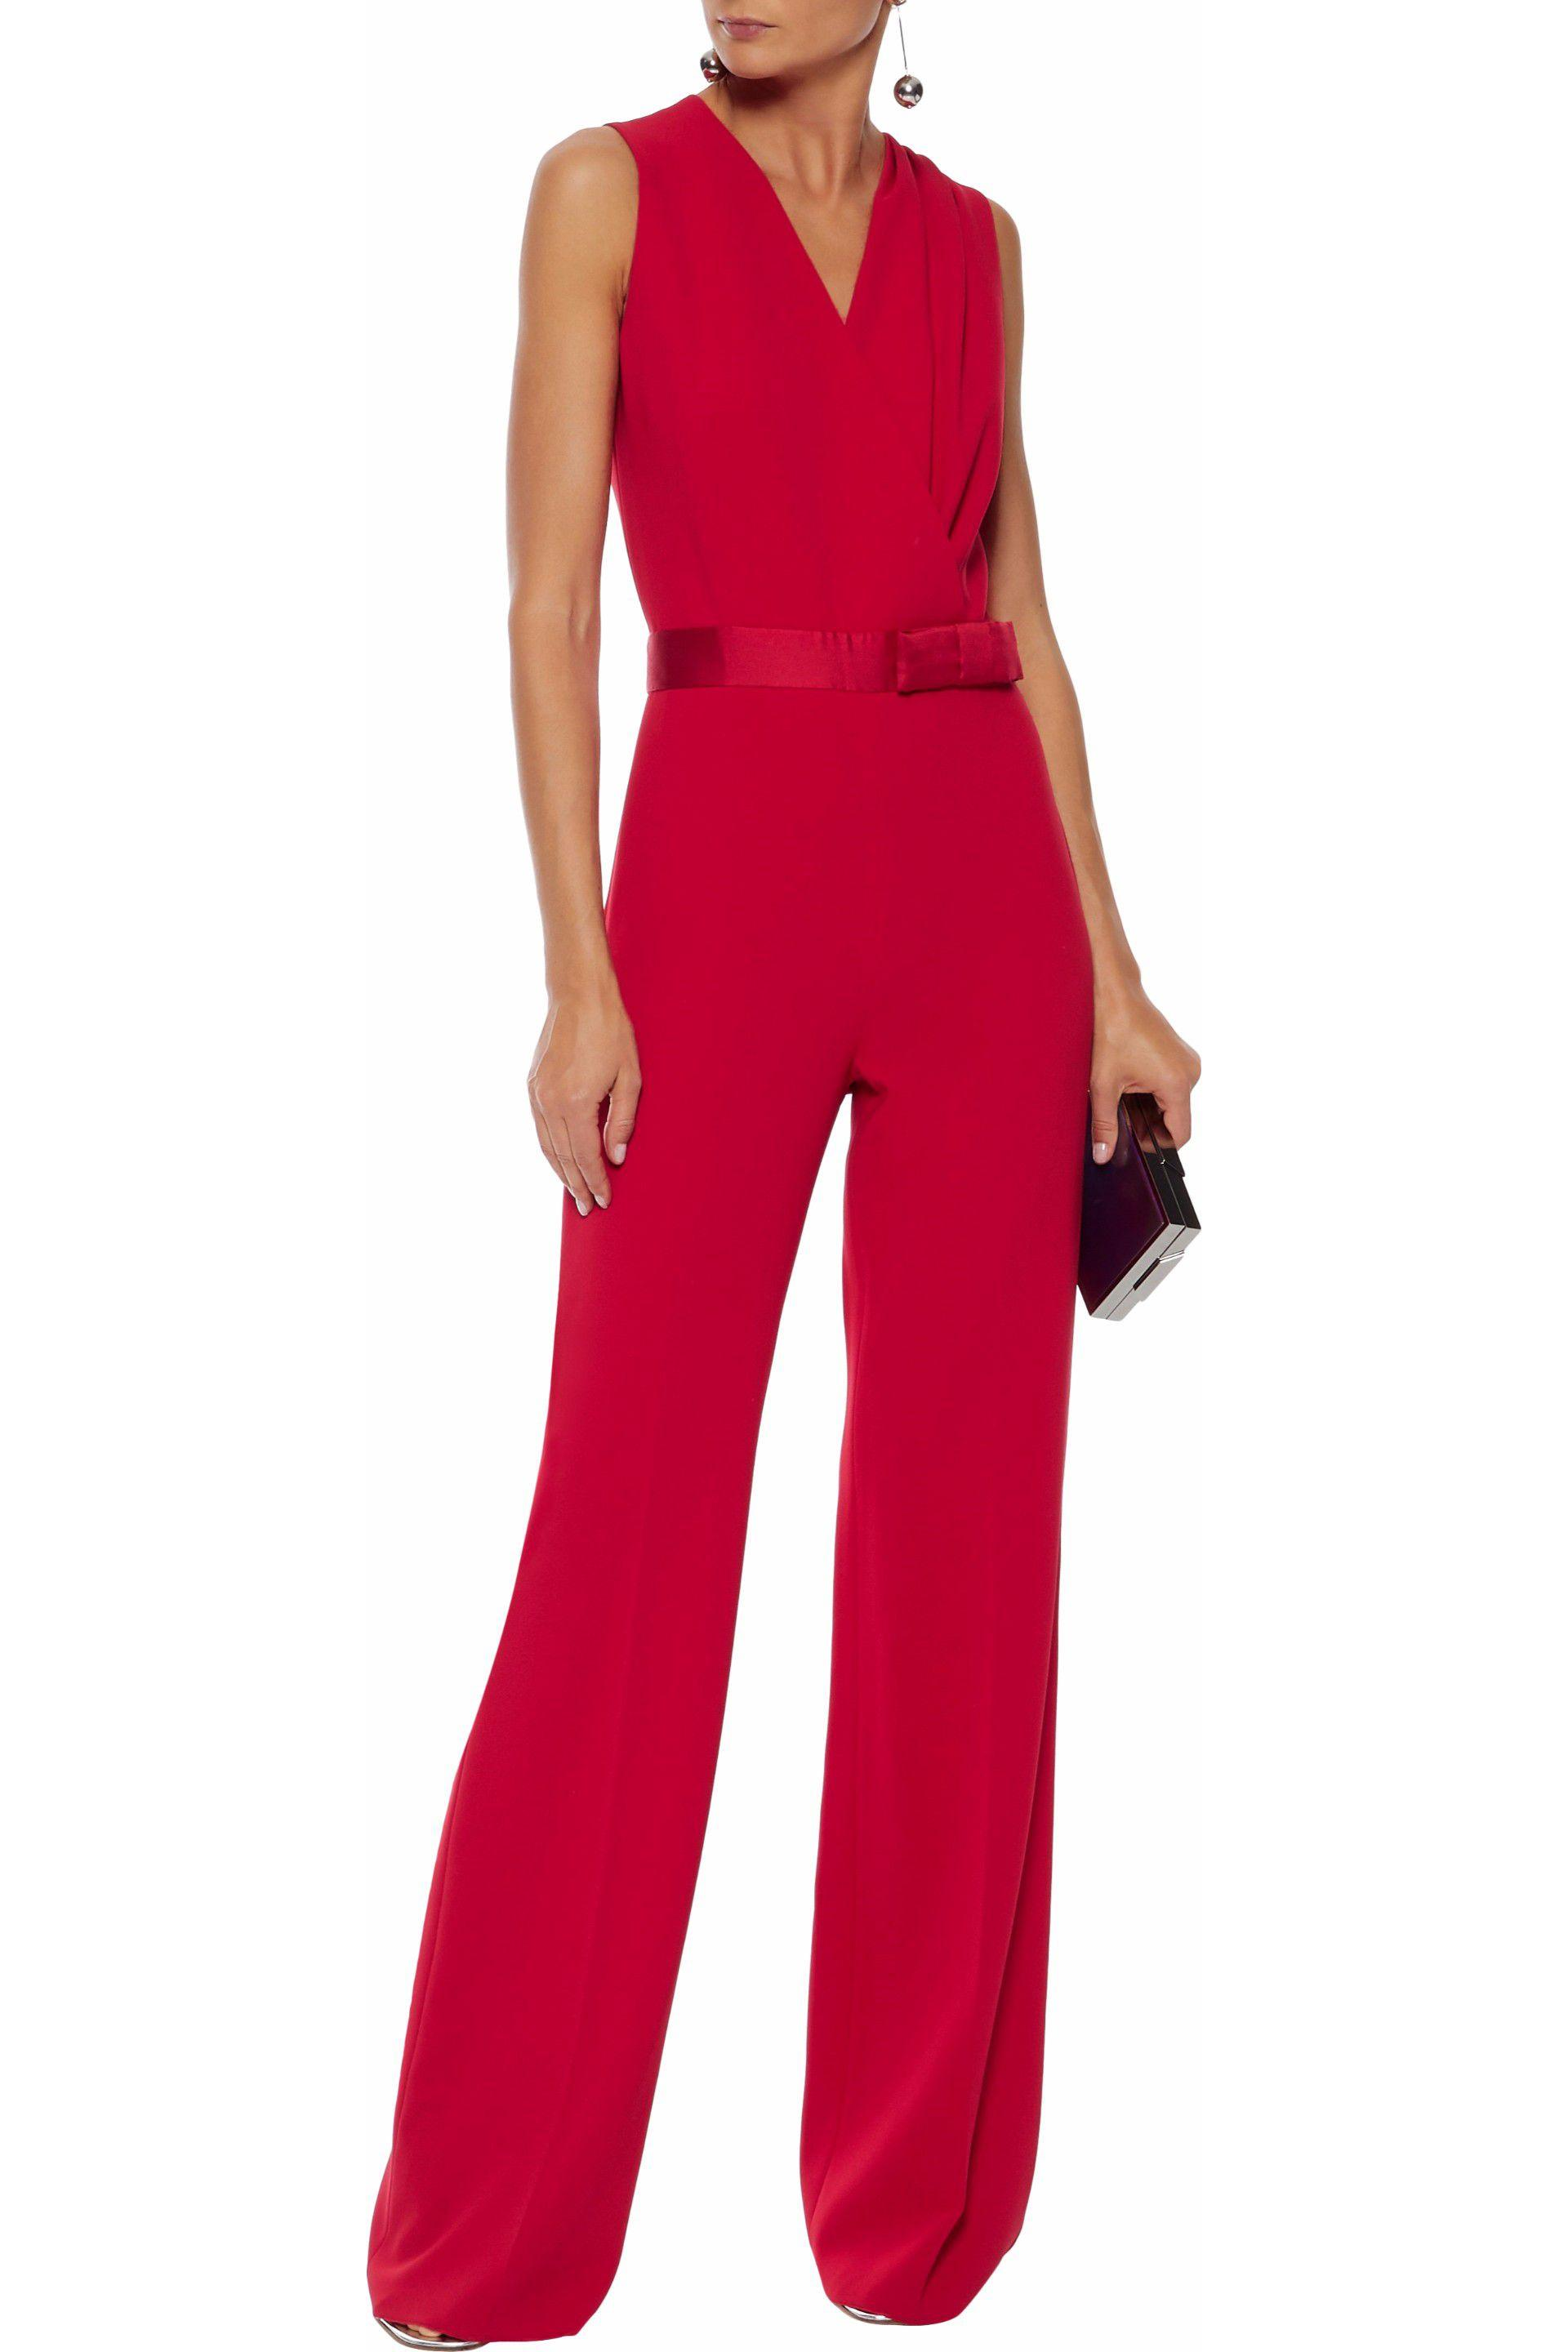 Lyst - Max Mara Woman Wrap-effect Satin-trimmed Crepe Jumpsuit Red ... 446f07a49